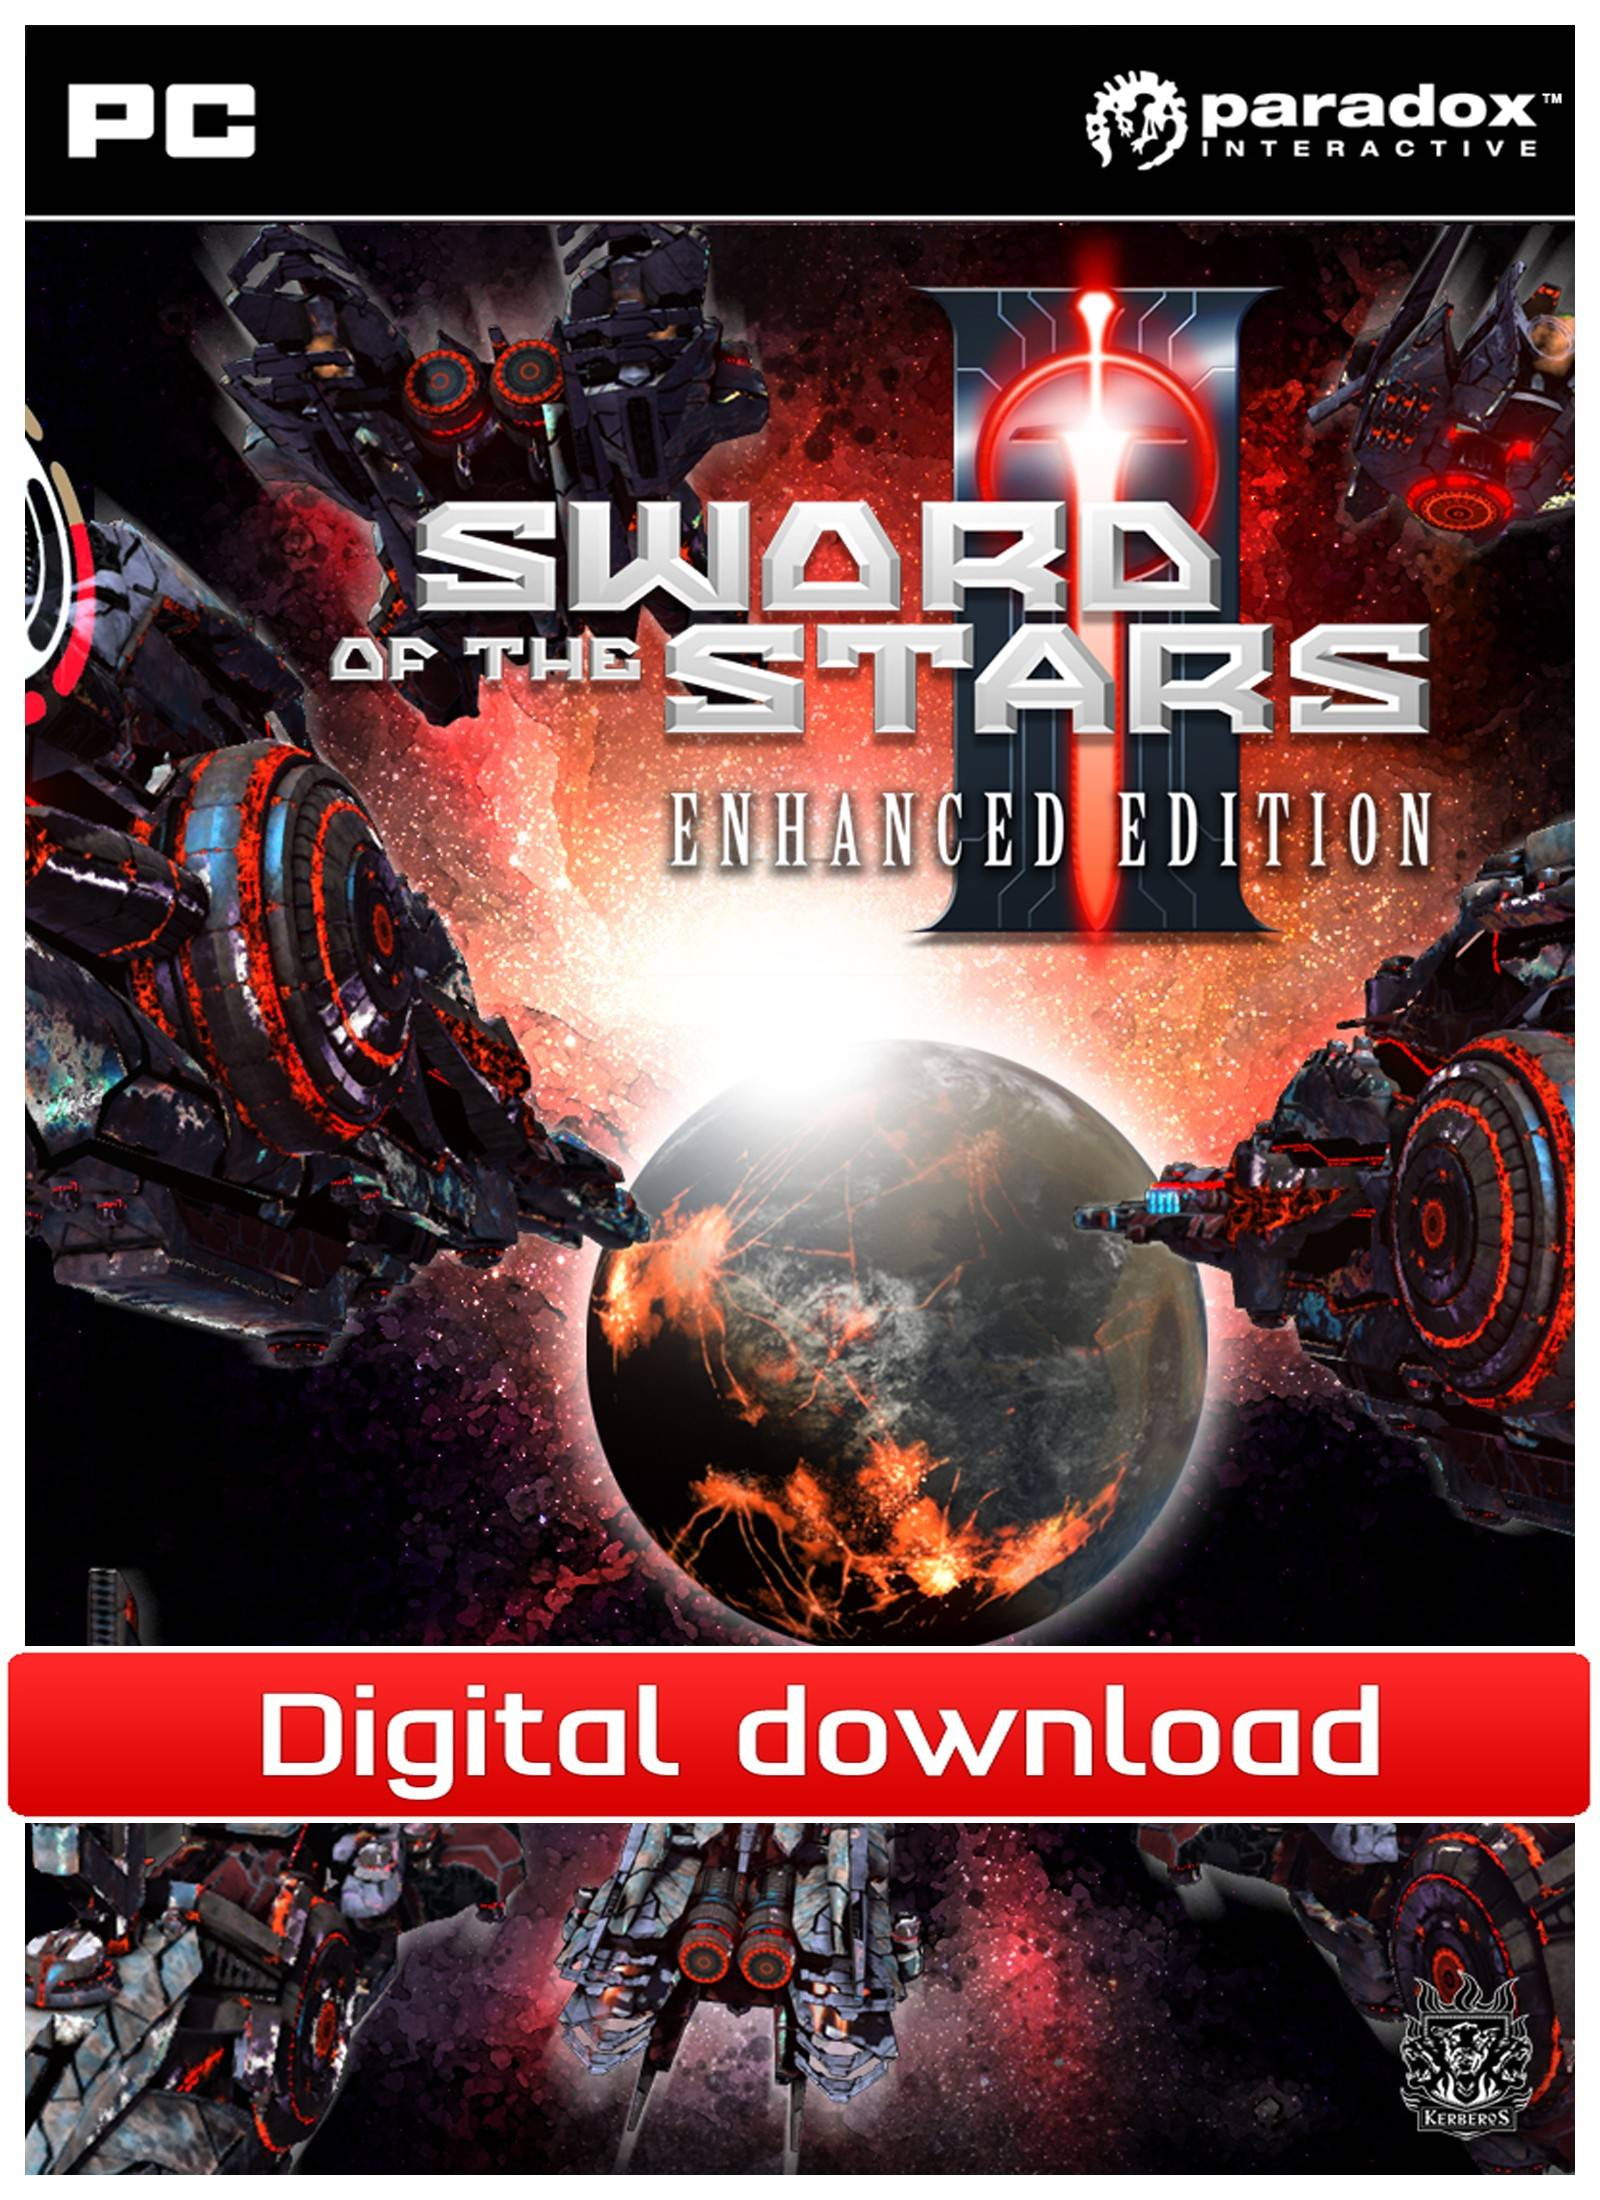 Paradox Sword of the Stars 2: Enhanced Edition (Download)